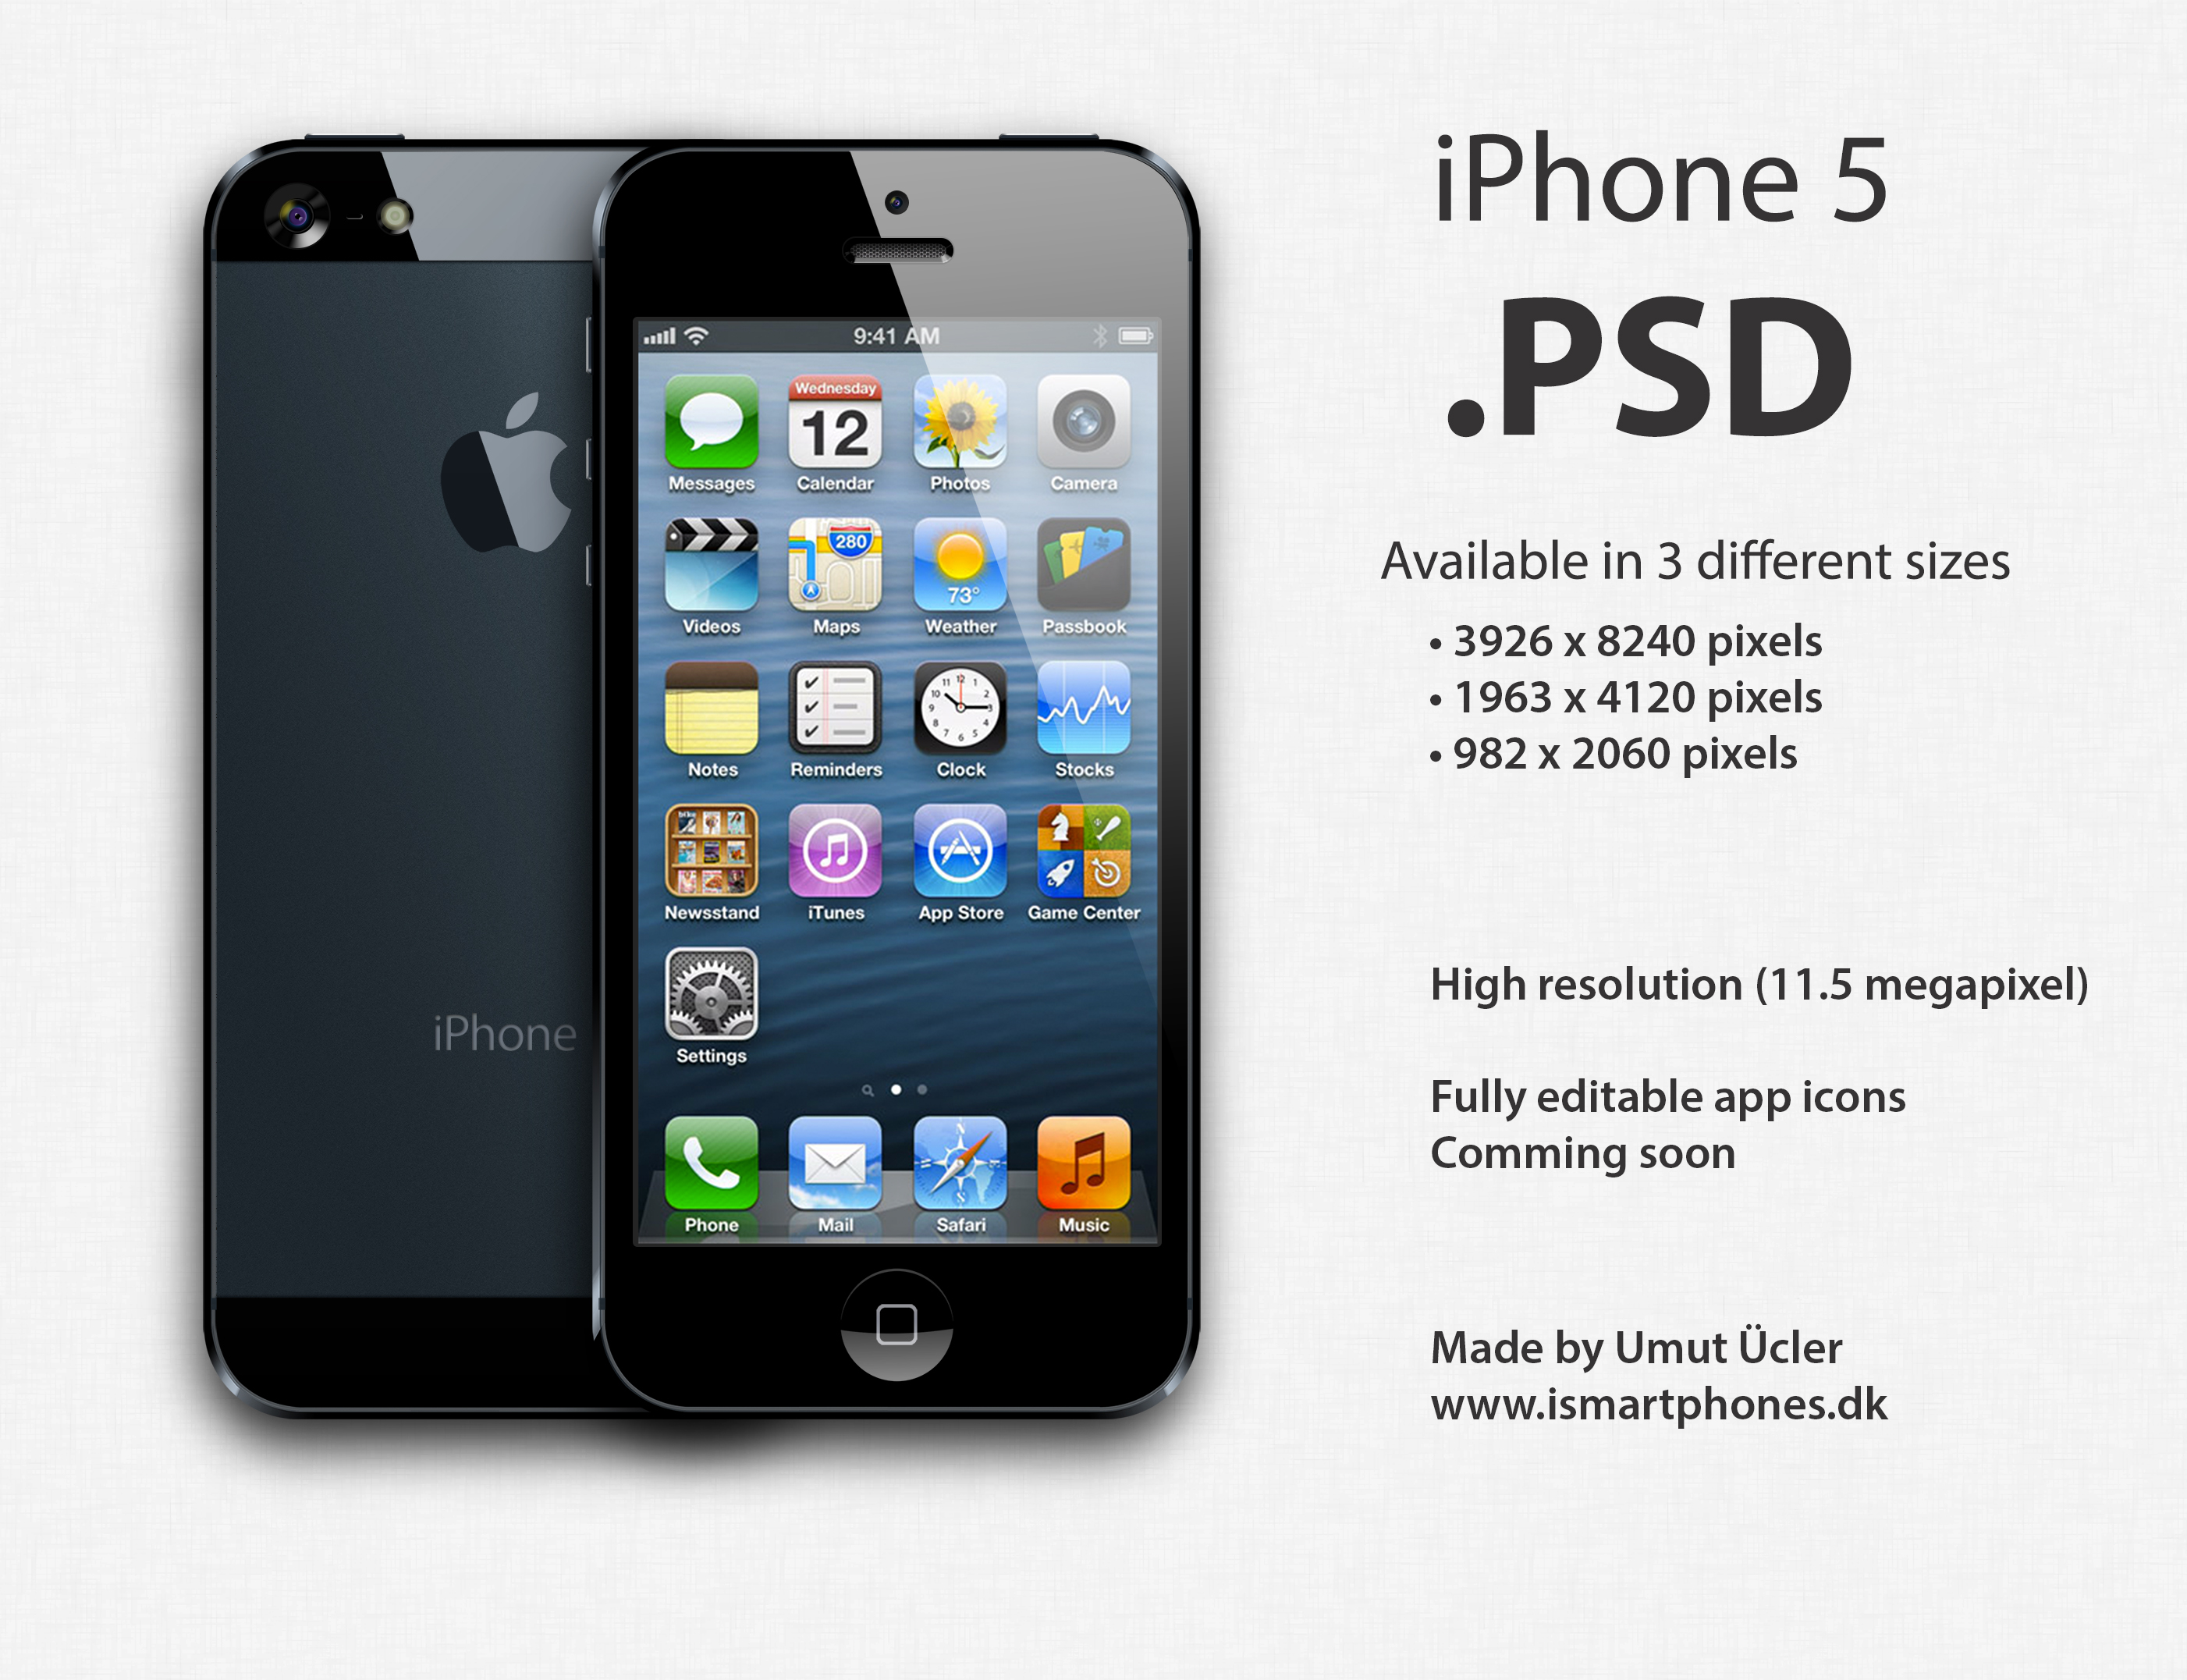 5 Apple IPhone 5 PSD Images